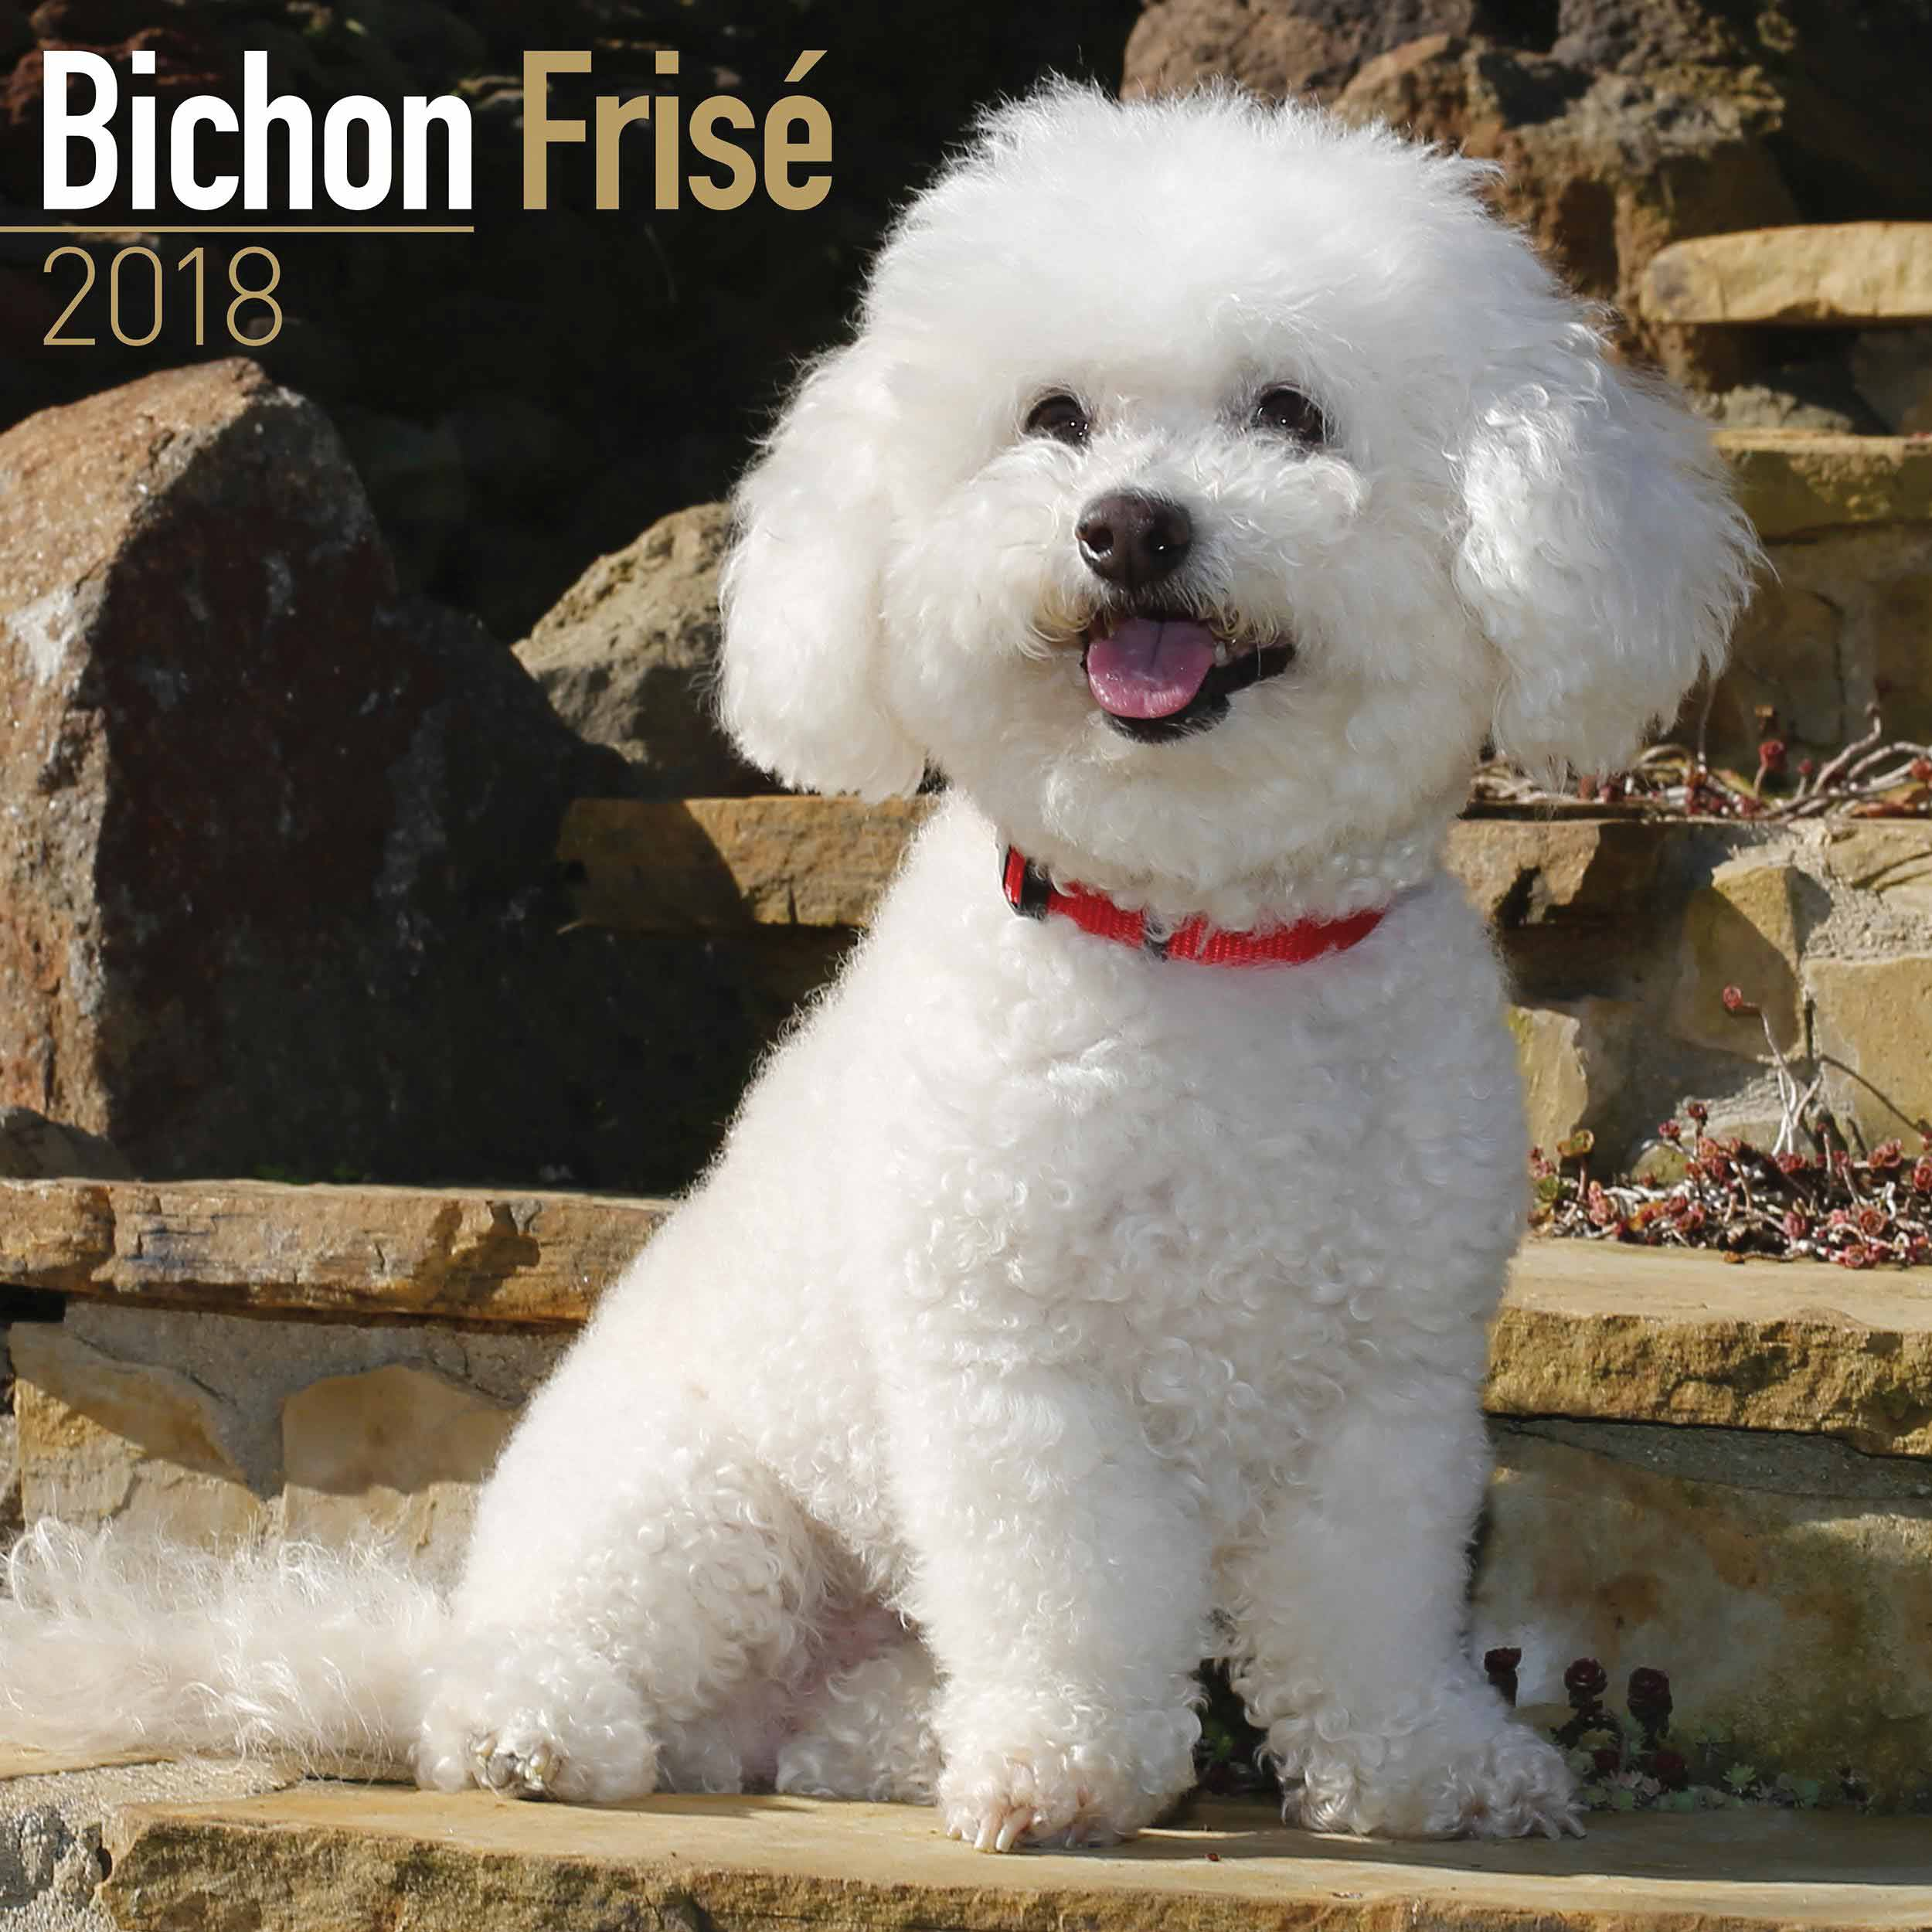 Pictures Of Bichon Frize Dogs